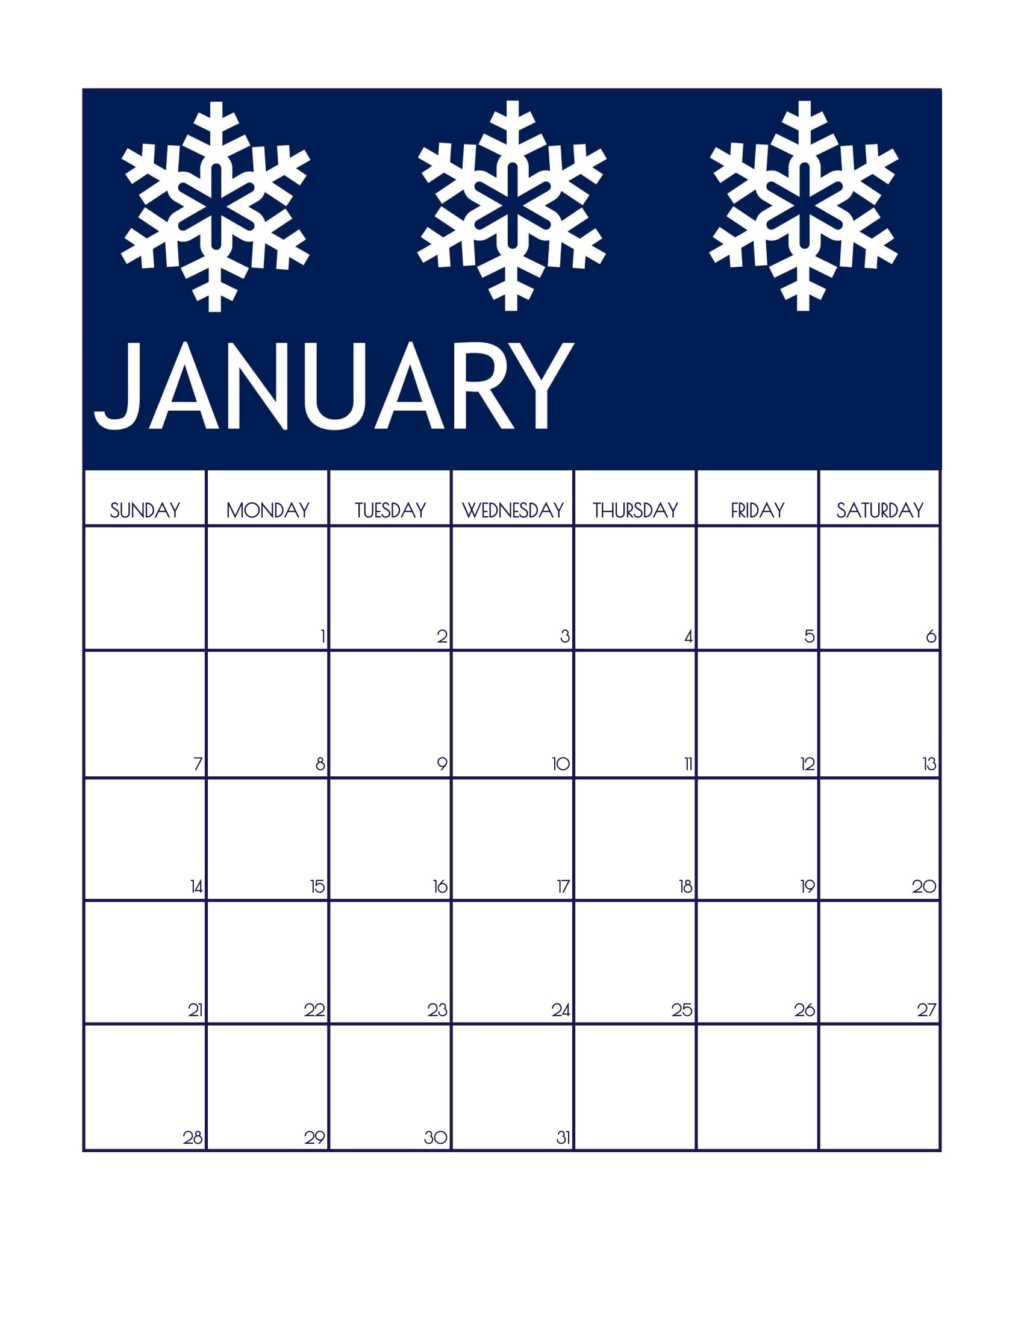 i went with simple snowflakes for january i love this navy color it reminds me of night time after it has snowed january is the time for new beginnings